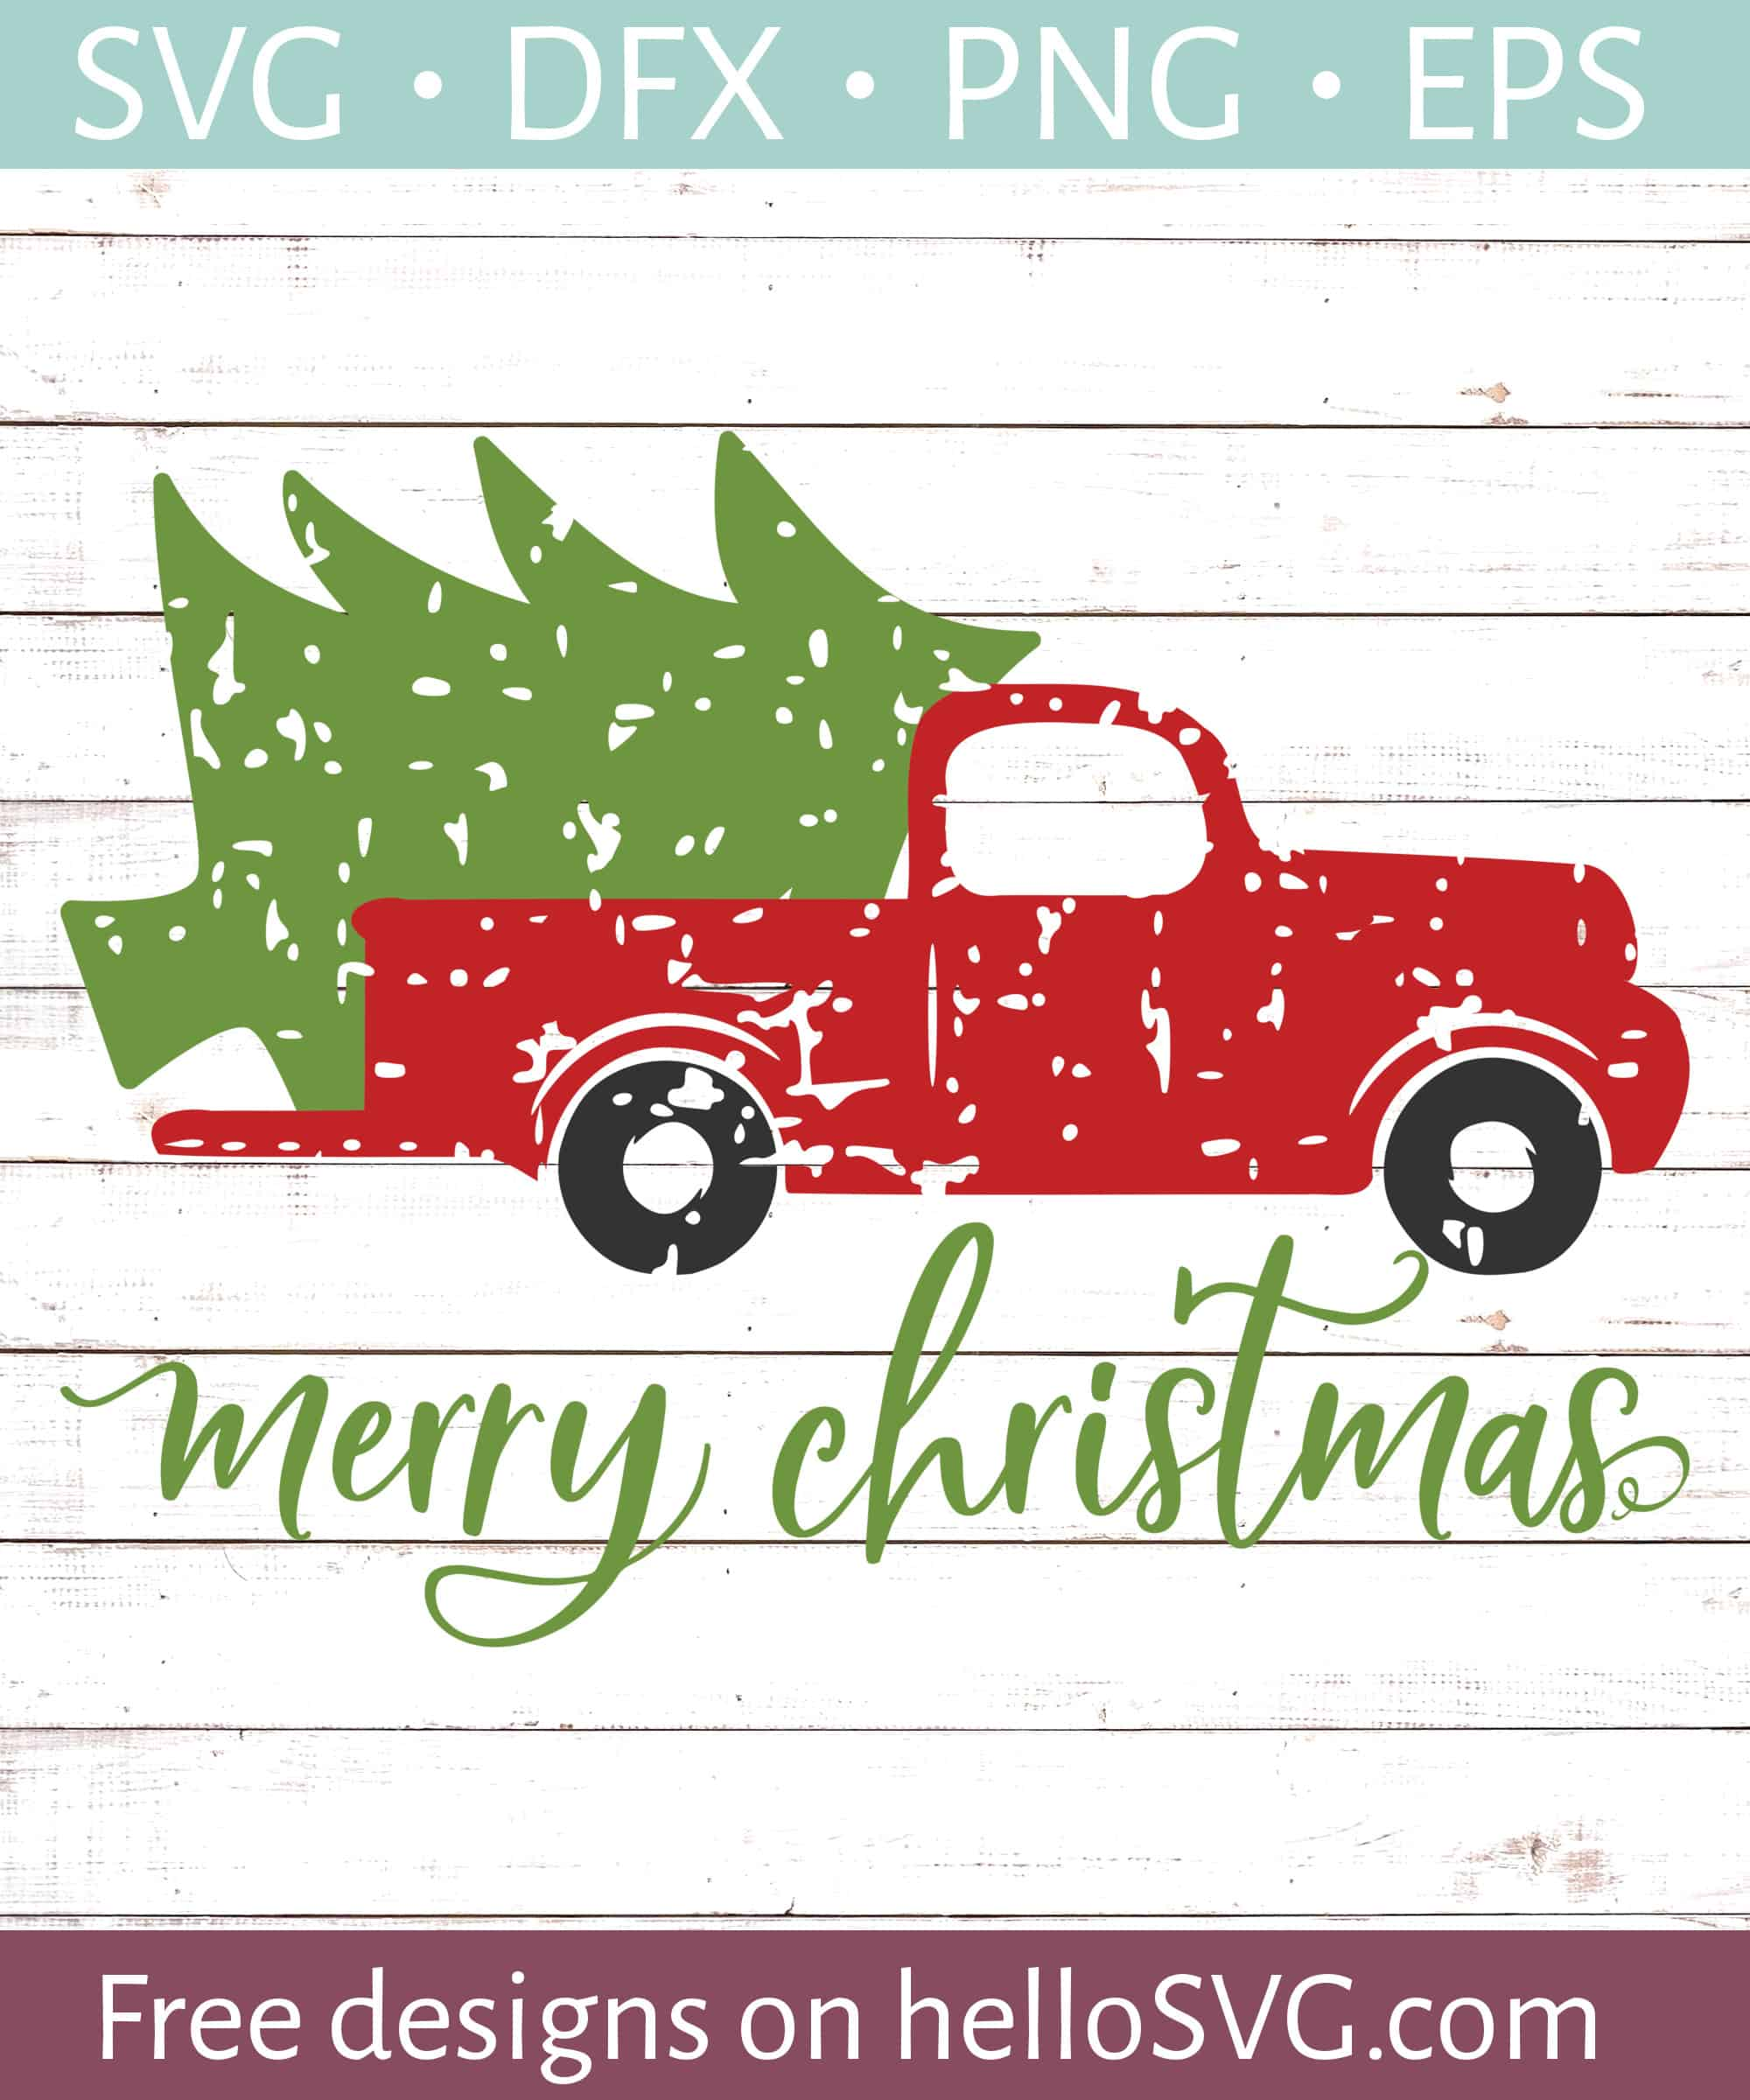 Merry Christmas With Vintage Truck Svg Free Svg Files Hellosvg Com